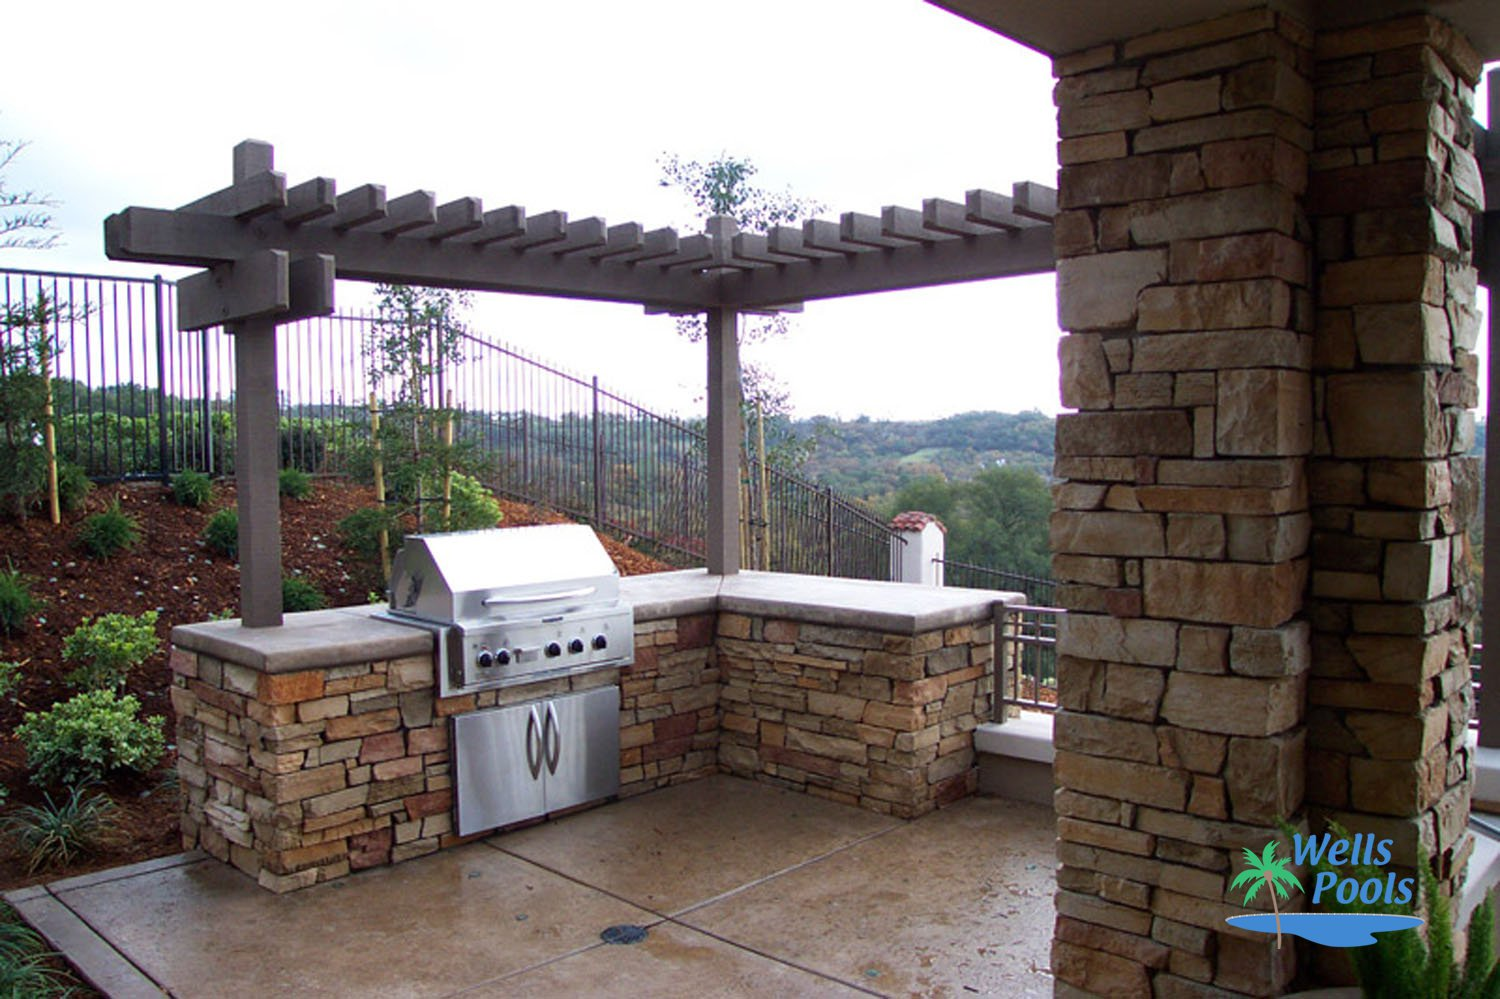 Outdoor living outdoor kitchens fireplaces fire pits for Pool with outdoor kitchen